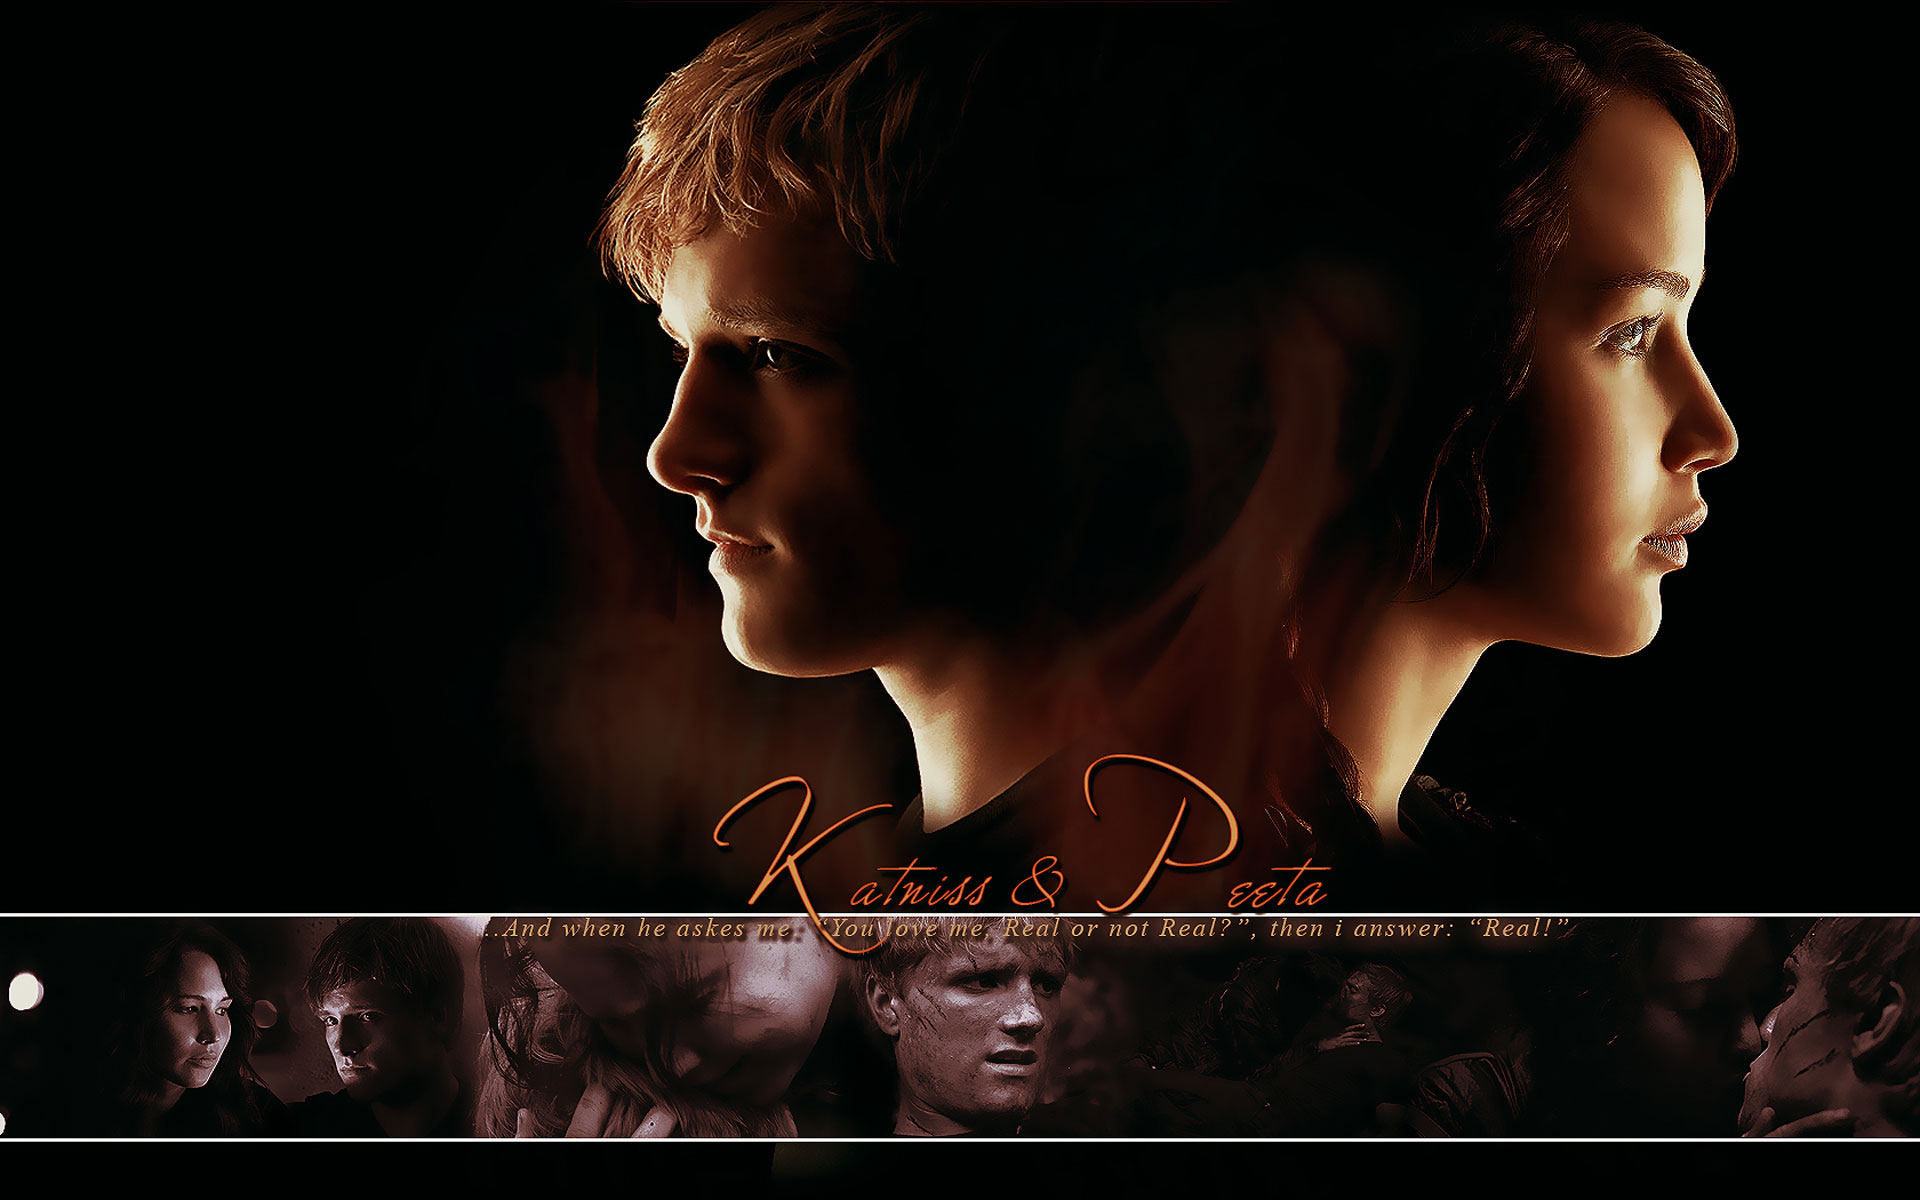 the hunger games katniss and peeta s relationship In mockingjay katniss and gale's relationship becomes closer as the book progresses he does everything he can to make her happy, including being the first one to volunteer to go to the capitol and save peeta, annie, and johanna, risking his life.